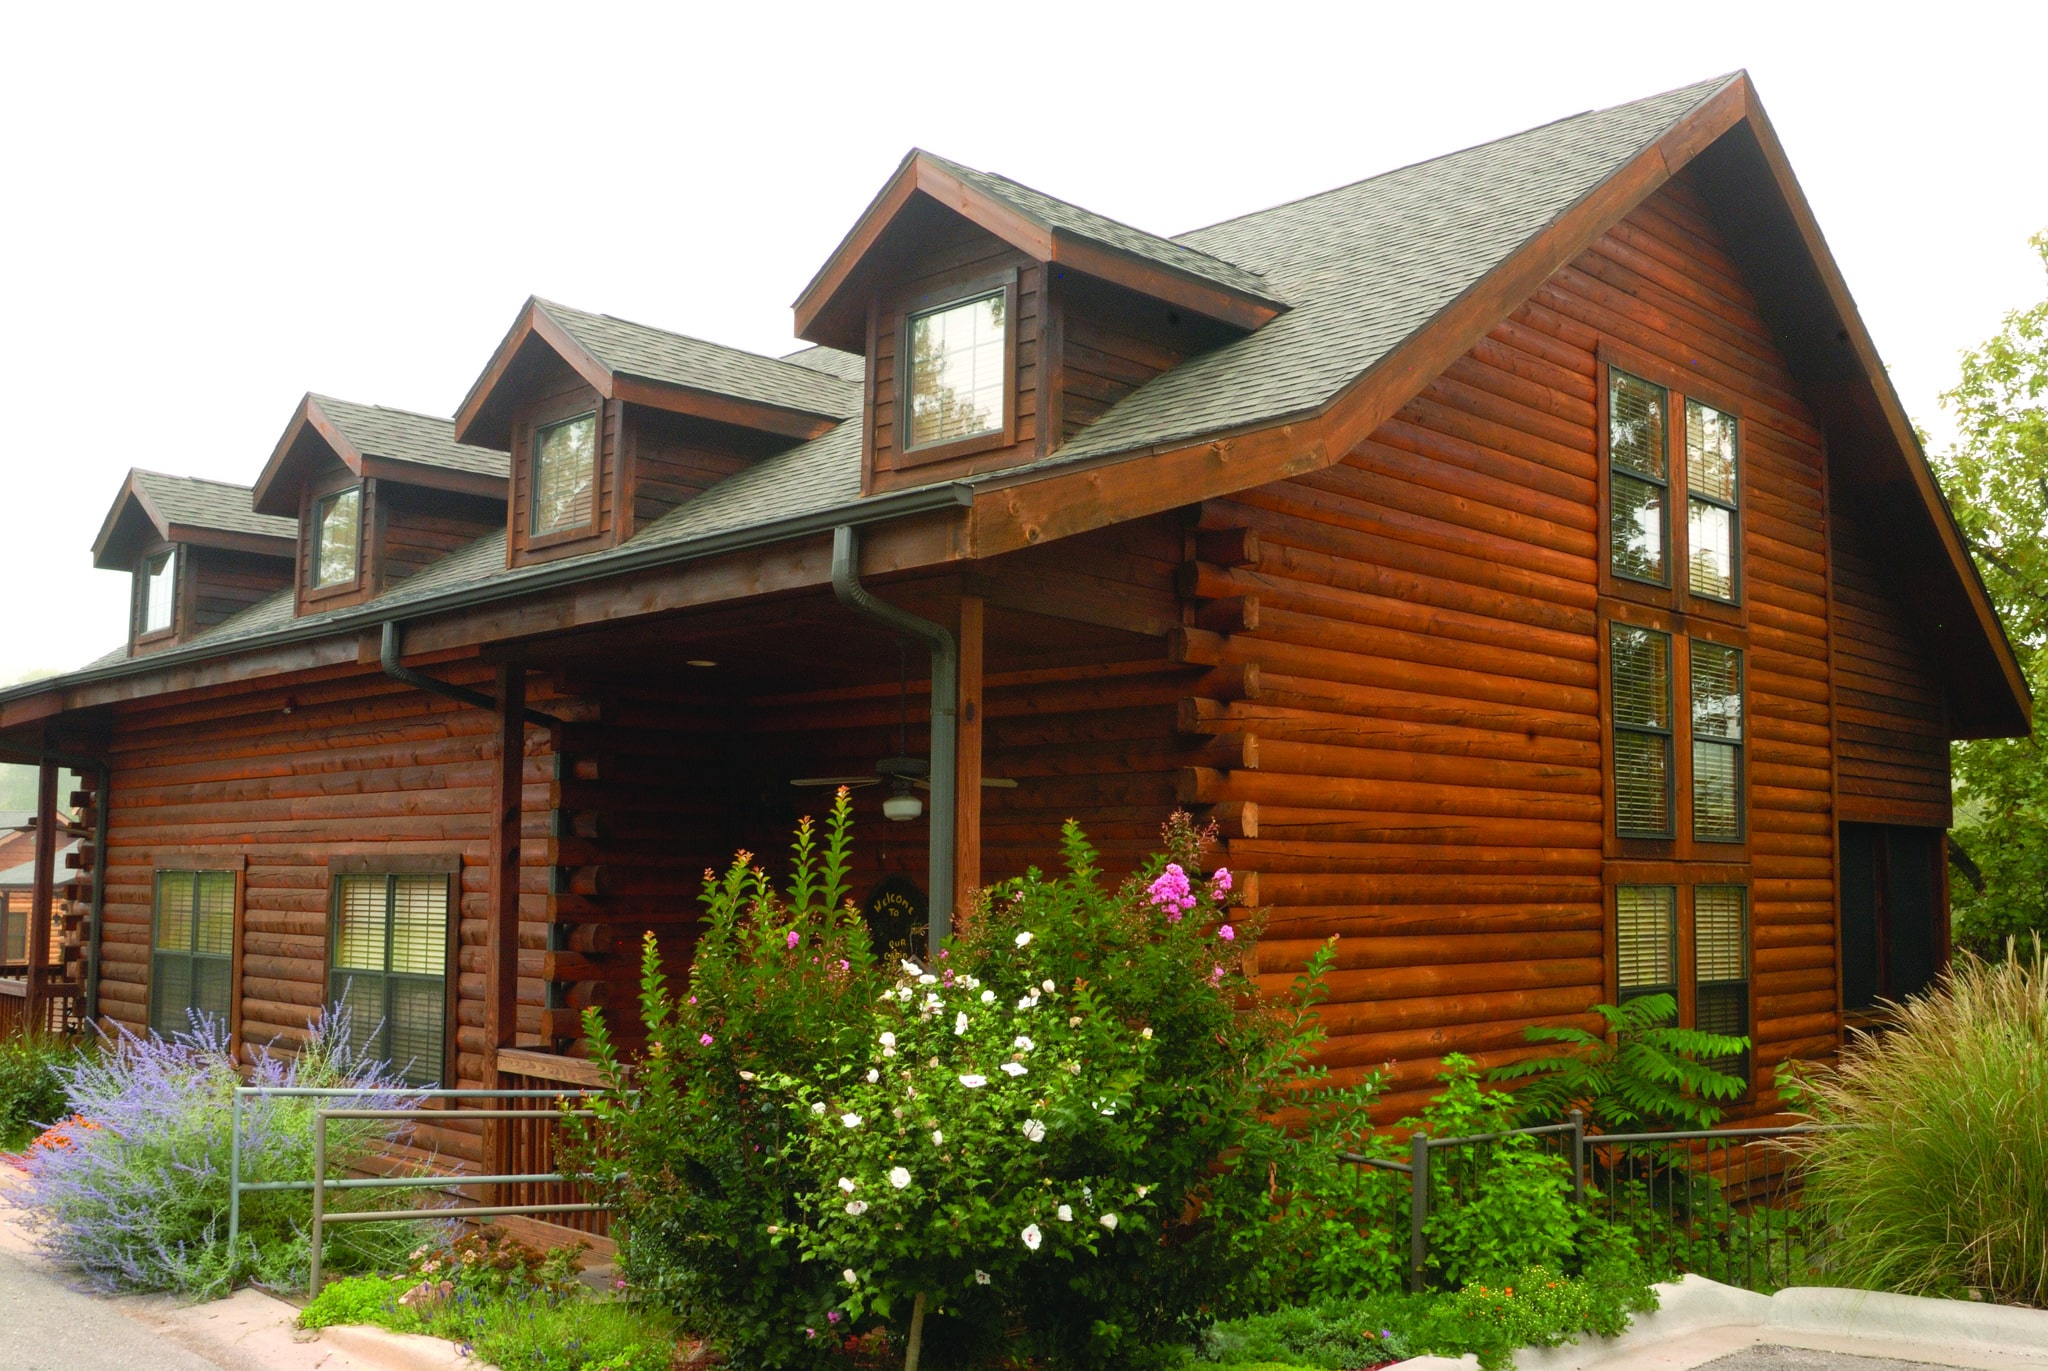 top camping for log familycabin wilderness in rustic morning branson the cabins wildernesscampground pick news mo dallas